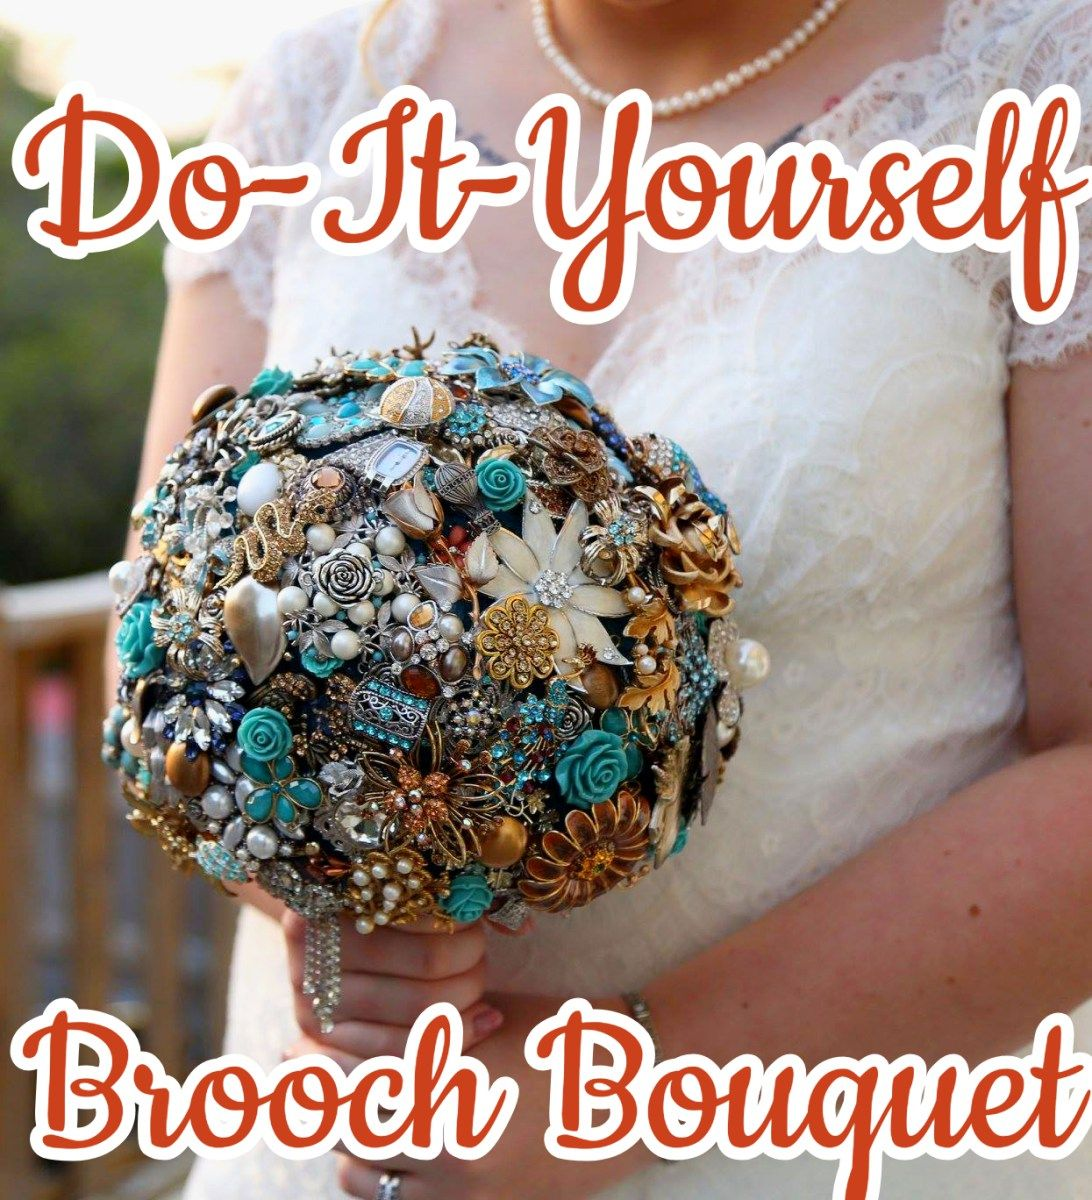 DoItYourself Brooch Bouquet (With images) Brooch